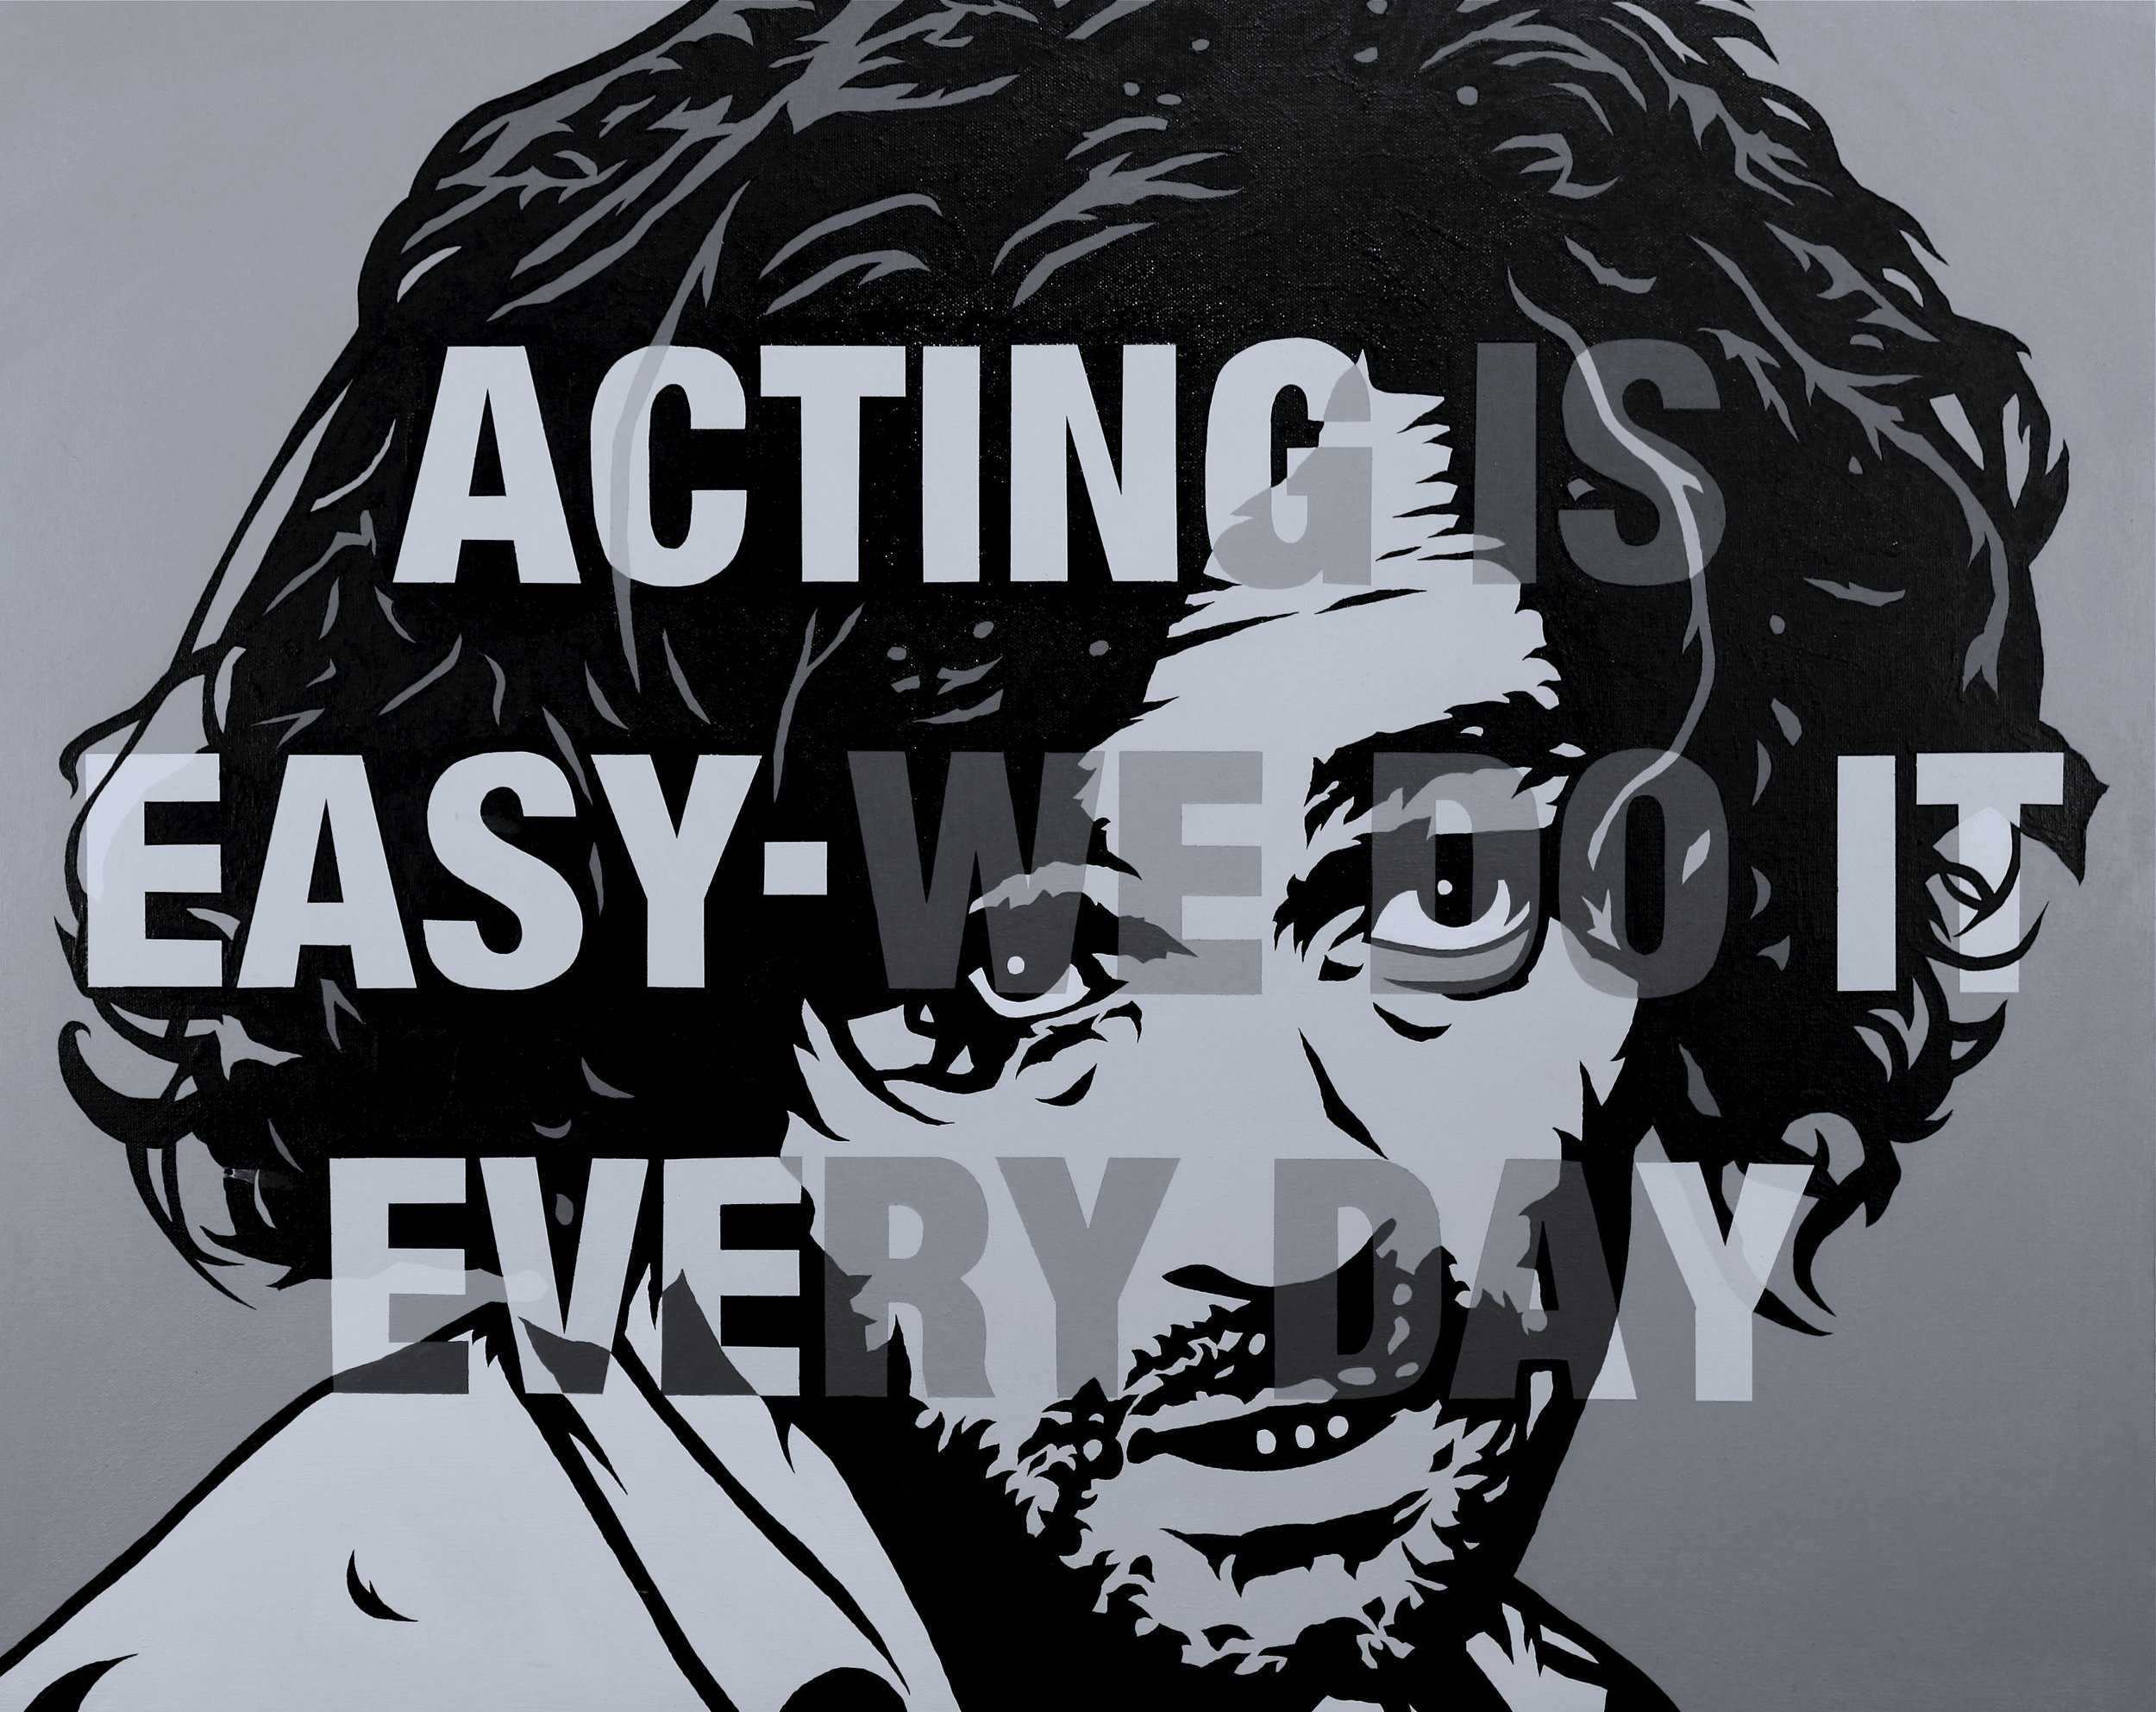 """Acting is easy, we do it every day"" Acrylic on canvas."